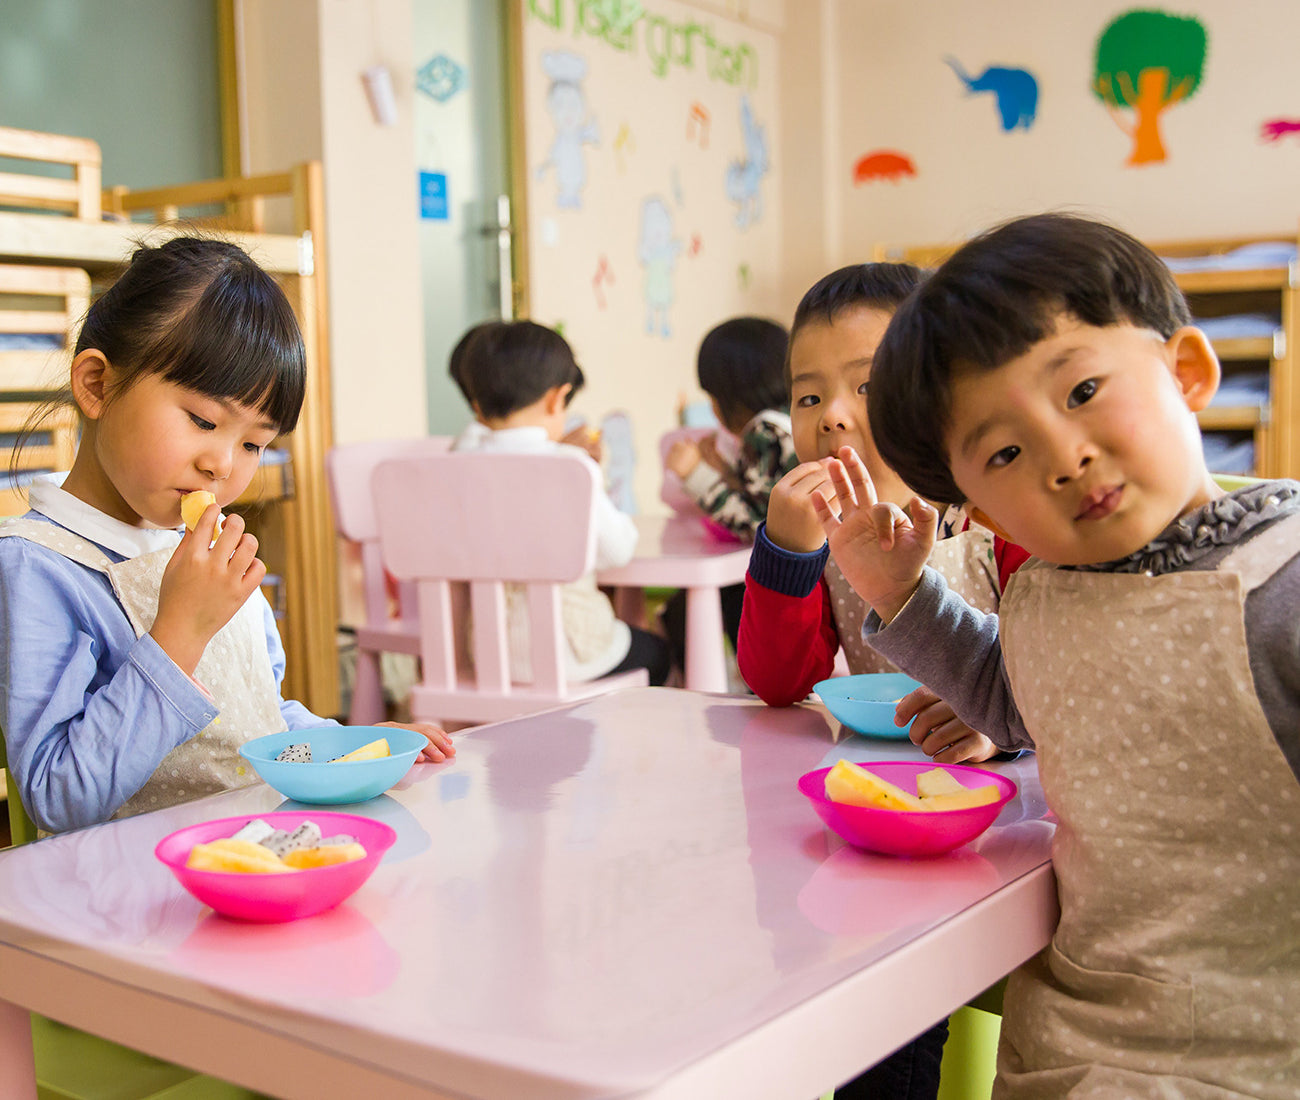 Children at a table, eating snacks